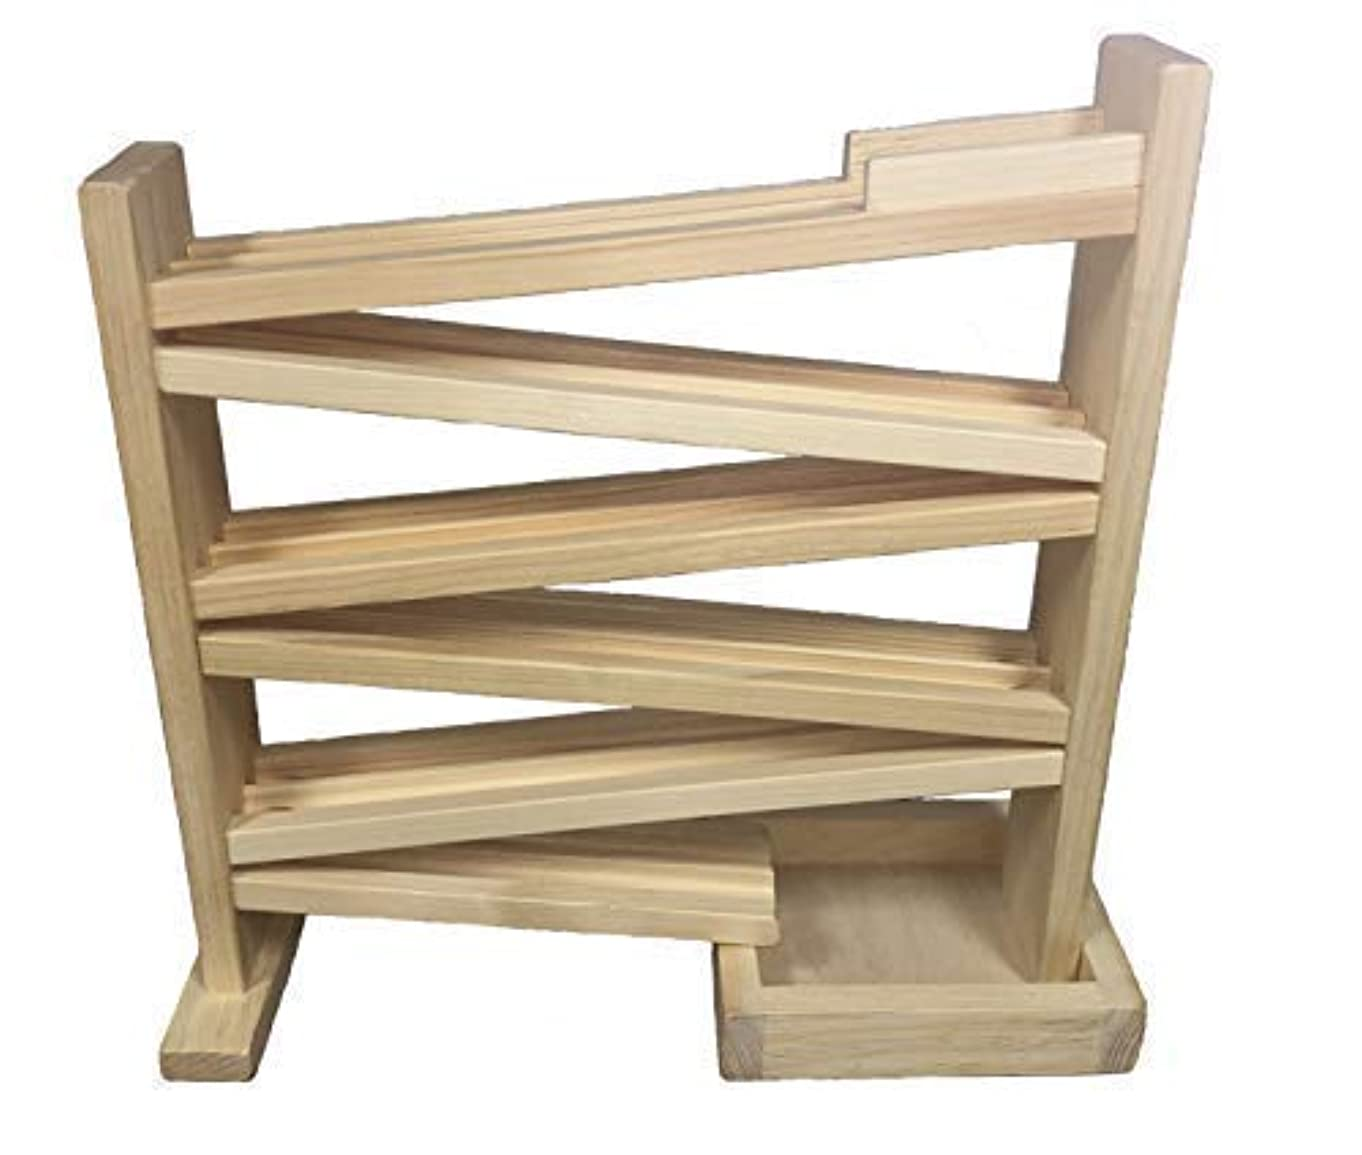 Marble Roller Double Track, Amish-Made, Handcrafted Wooden Marble Run